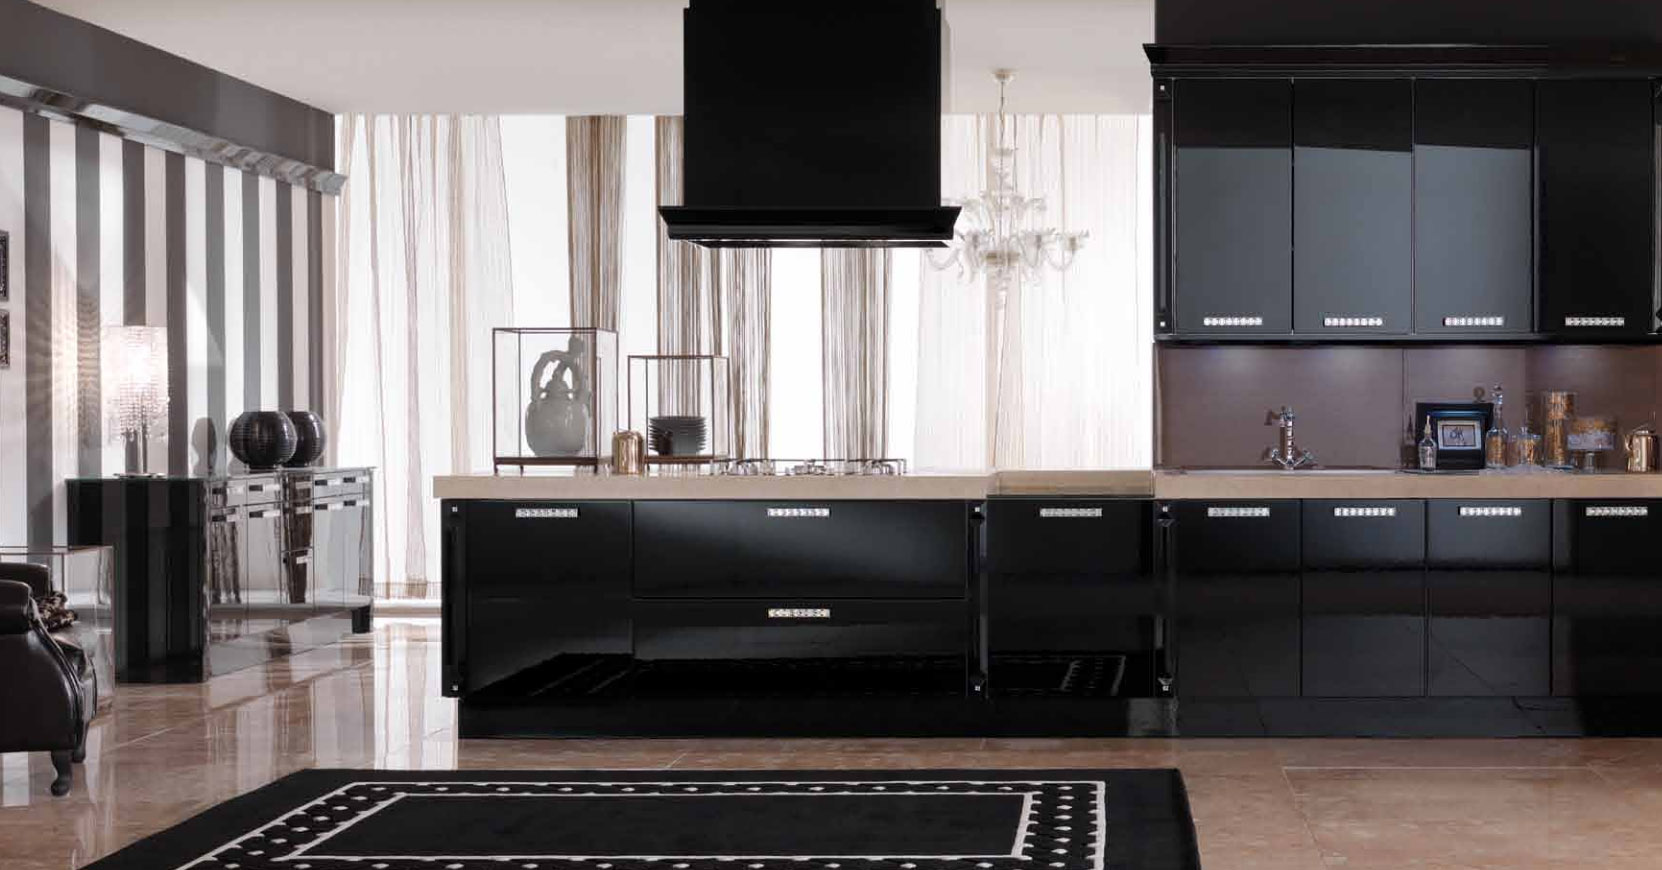 cuisines luxe alessi cerame. Black Bedroom Furniture Sets. Home Design Ideas